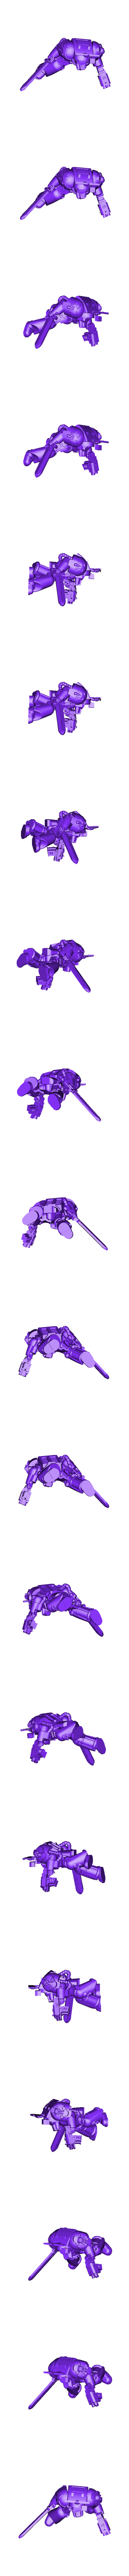 SpaceShipEnterTroop_3_Sword_2_SB_0.stl Download free STL file Bloody Heavily Armoured Space Soldiers • 3D print object, PhysUdo